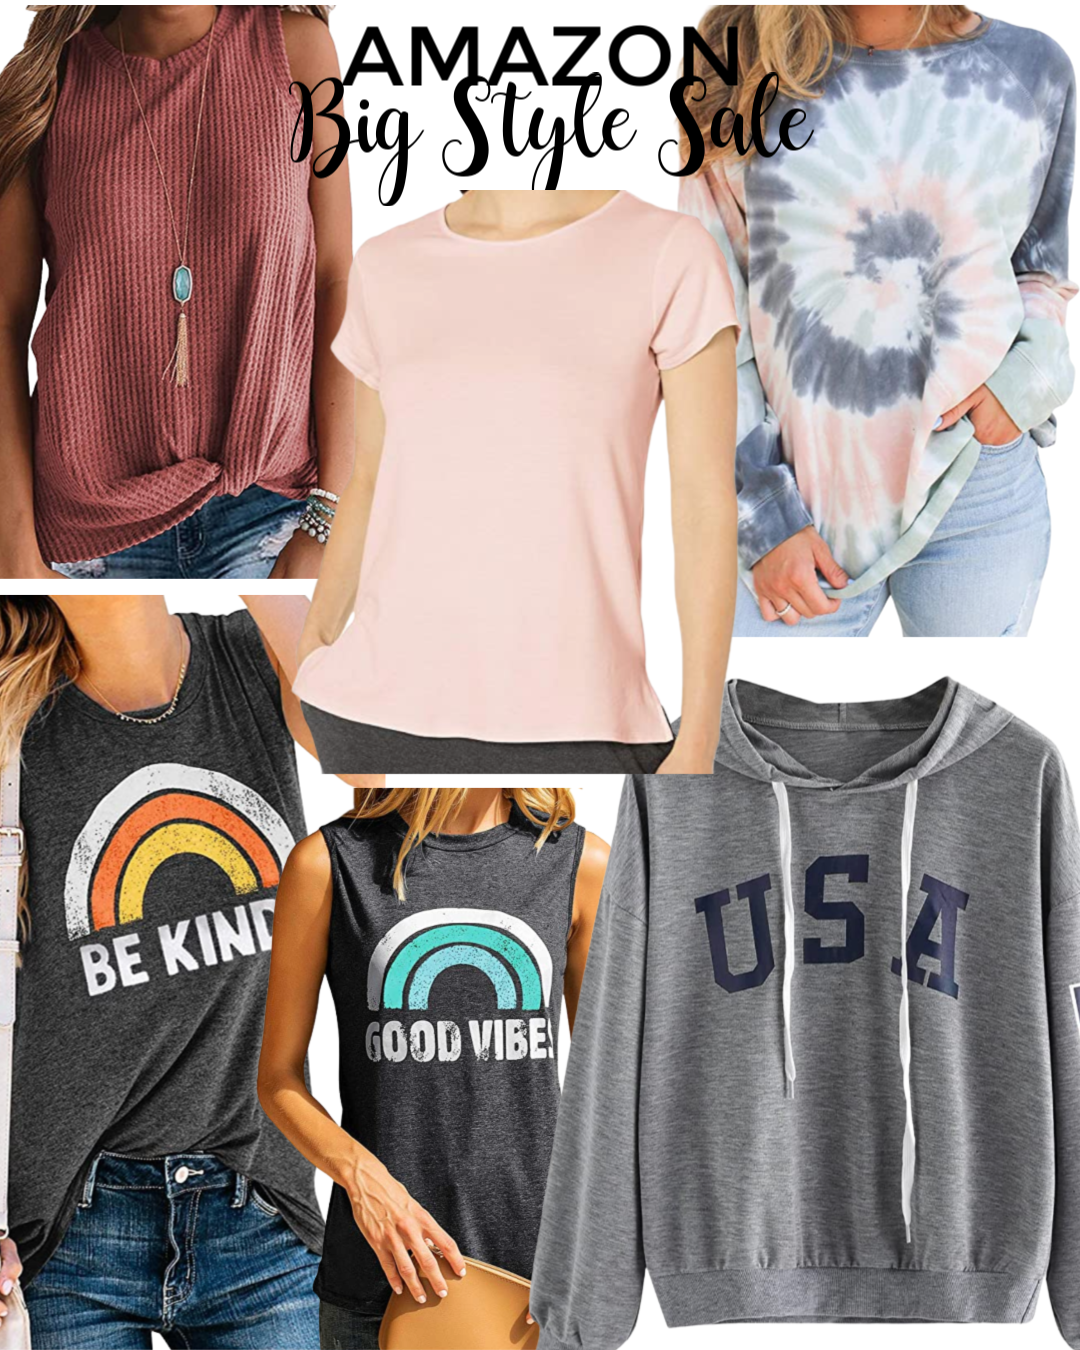 Amazon Big Style Sale Tops